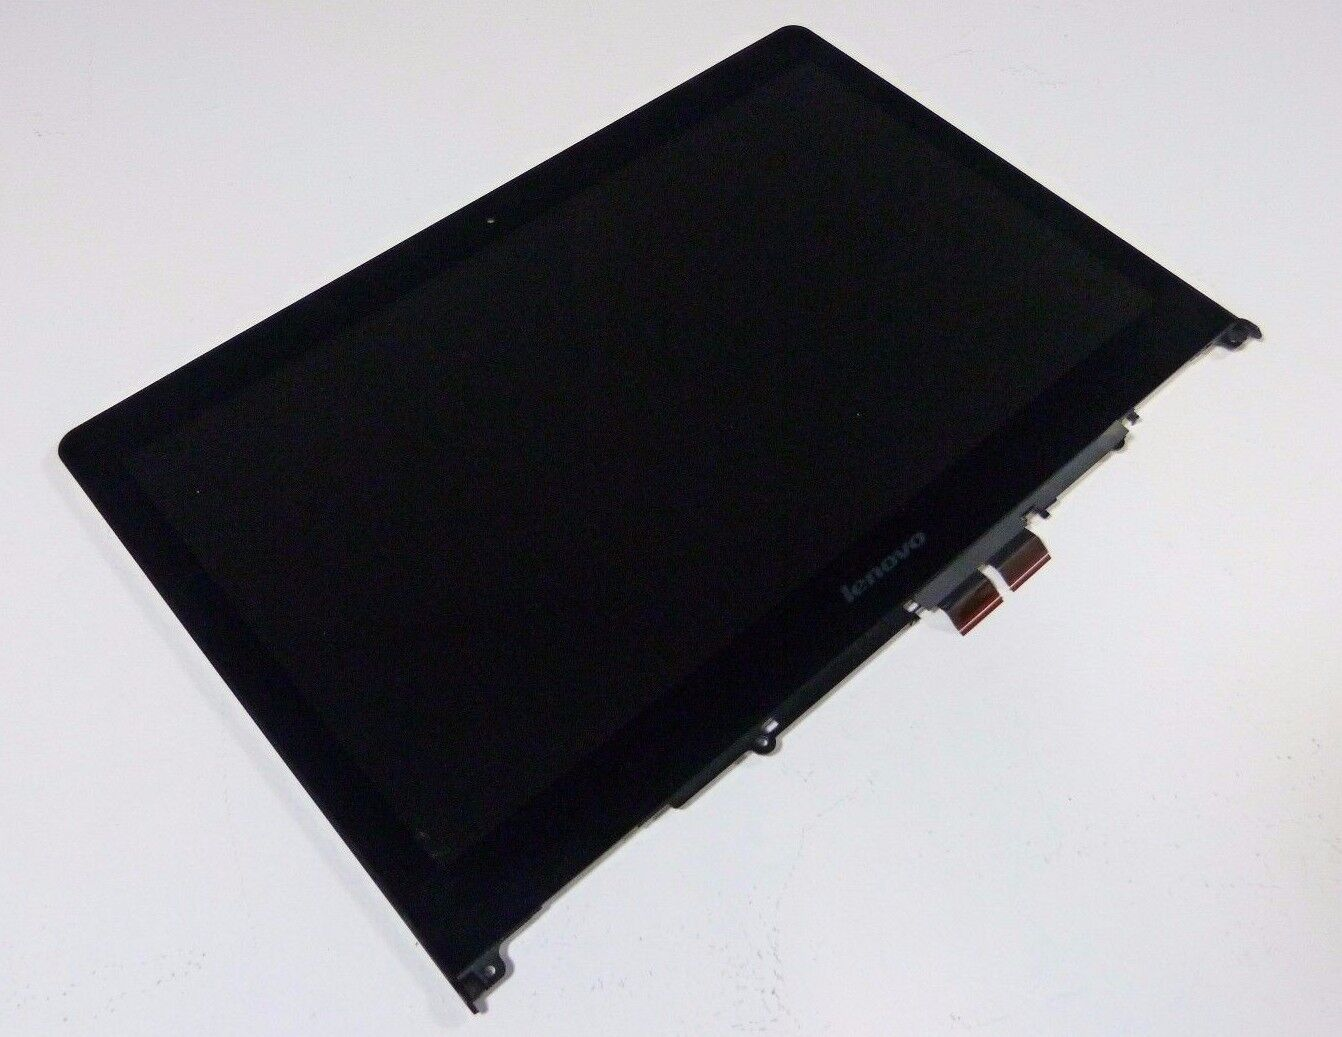 """14.0"""" LED FHD REPLACEMENT TOUCH SCREEN ASSEMBLY FOR IBM YOGA-500-14ISK 80R5"""